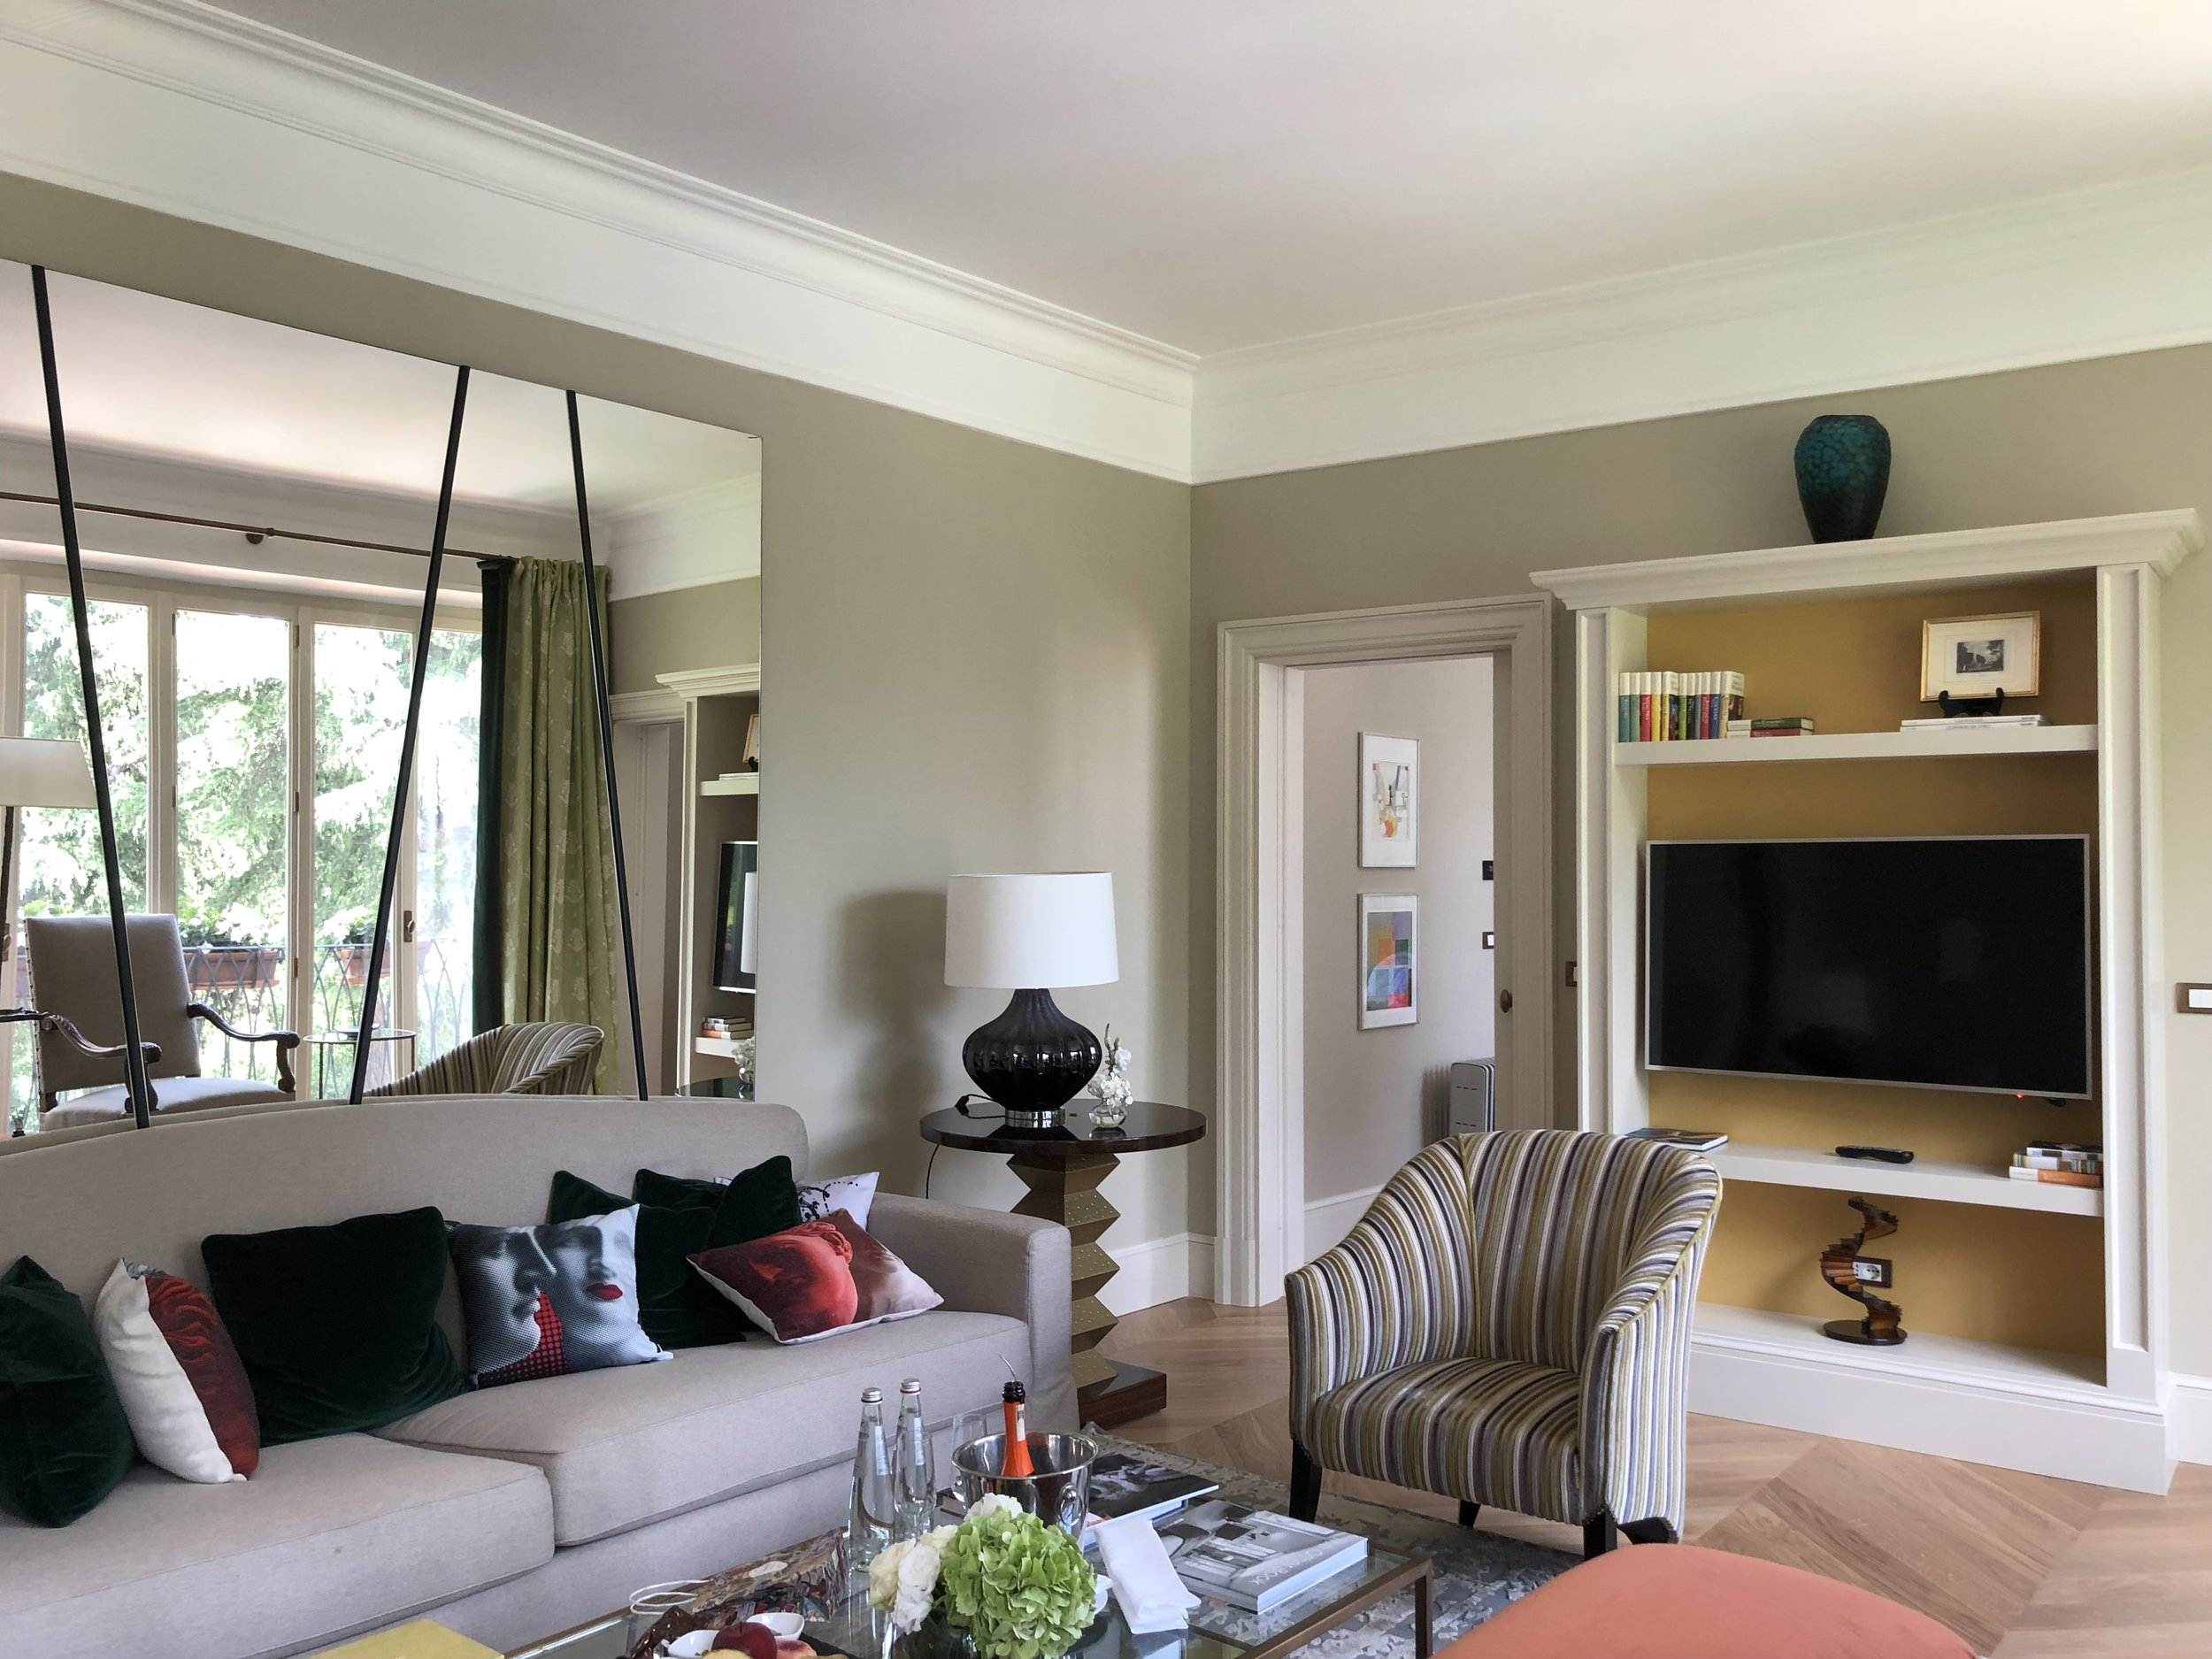 Relax in a suite blending contemporary and classic elements